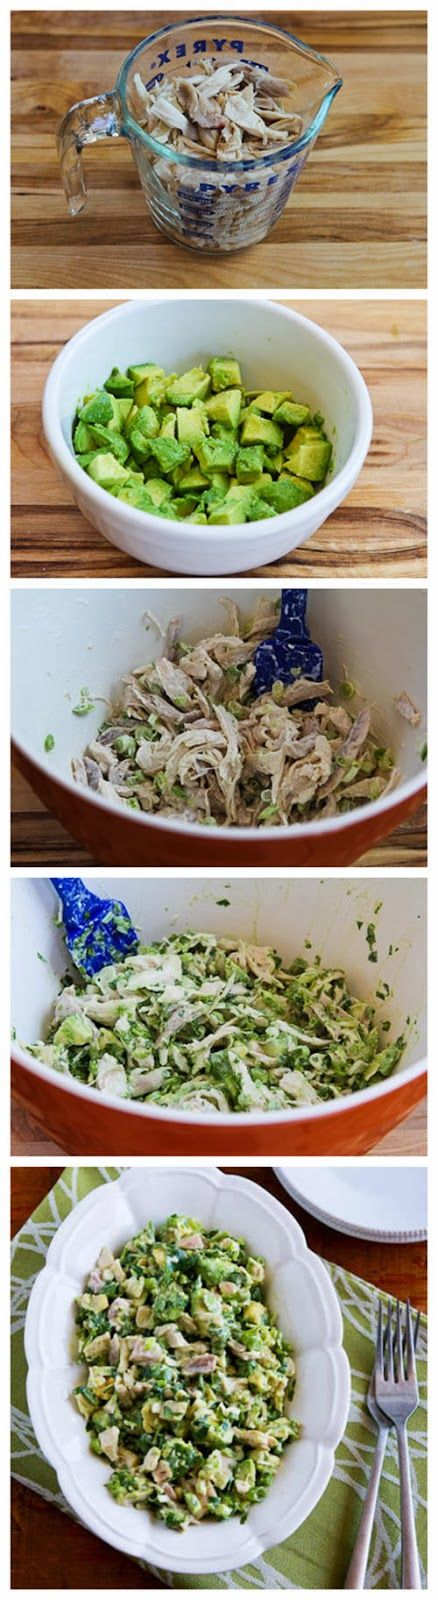 Chicken and Avocado Salad with Lime and Cilantro. Maybe add some fresh cherry tomatoes...